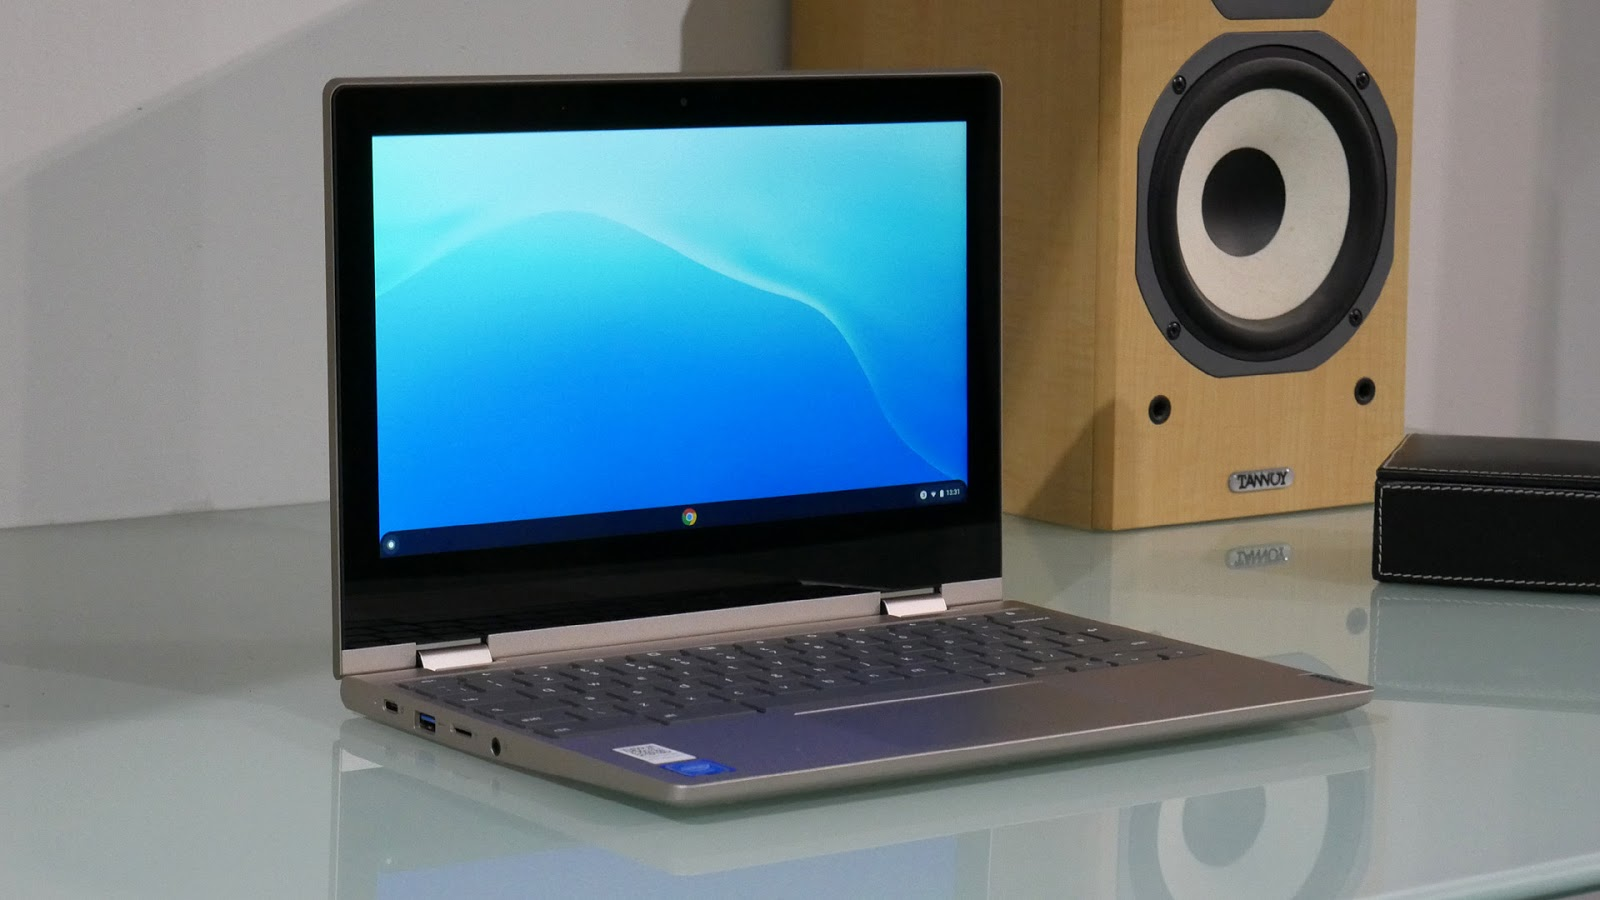 What Are the Best Notebook Computers for the Home Office - Choose One with the Best Cost-Benefit Ratio